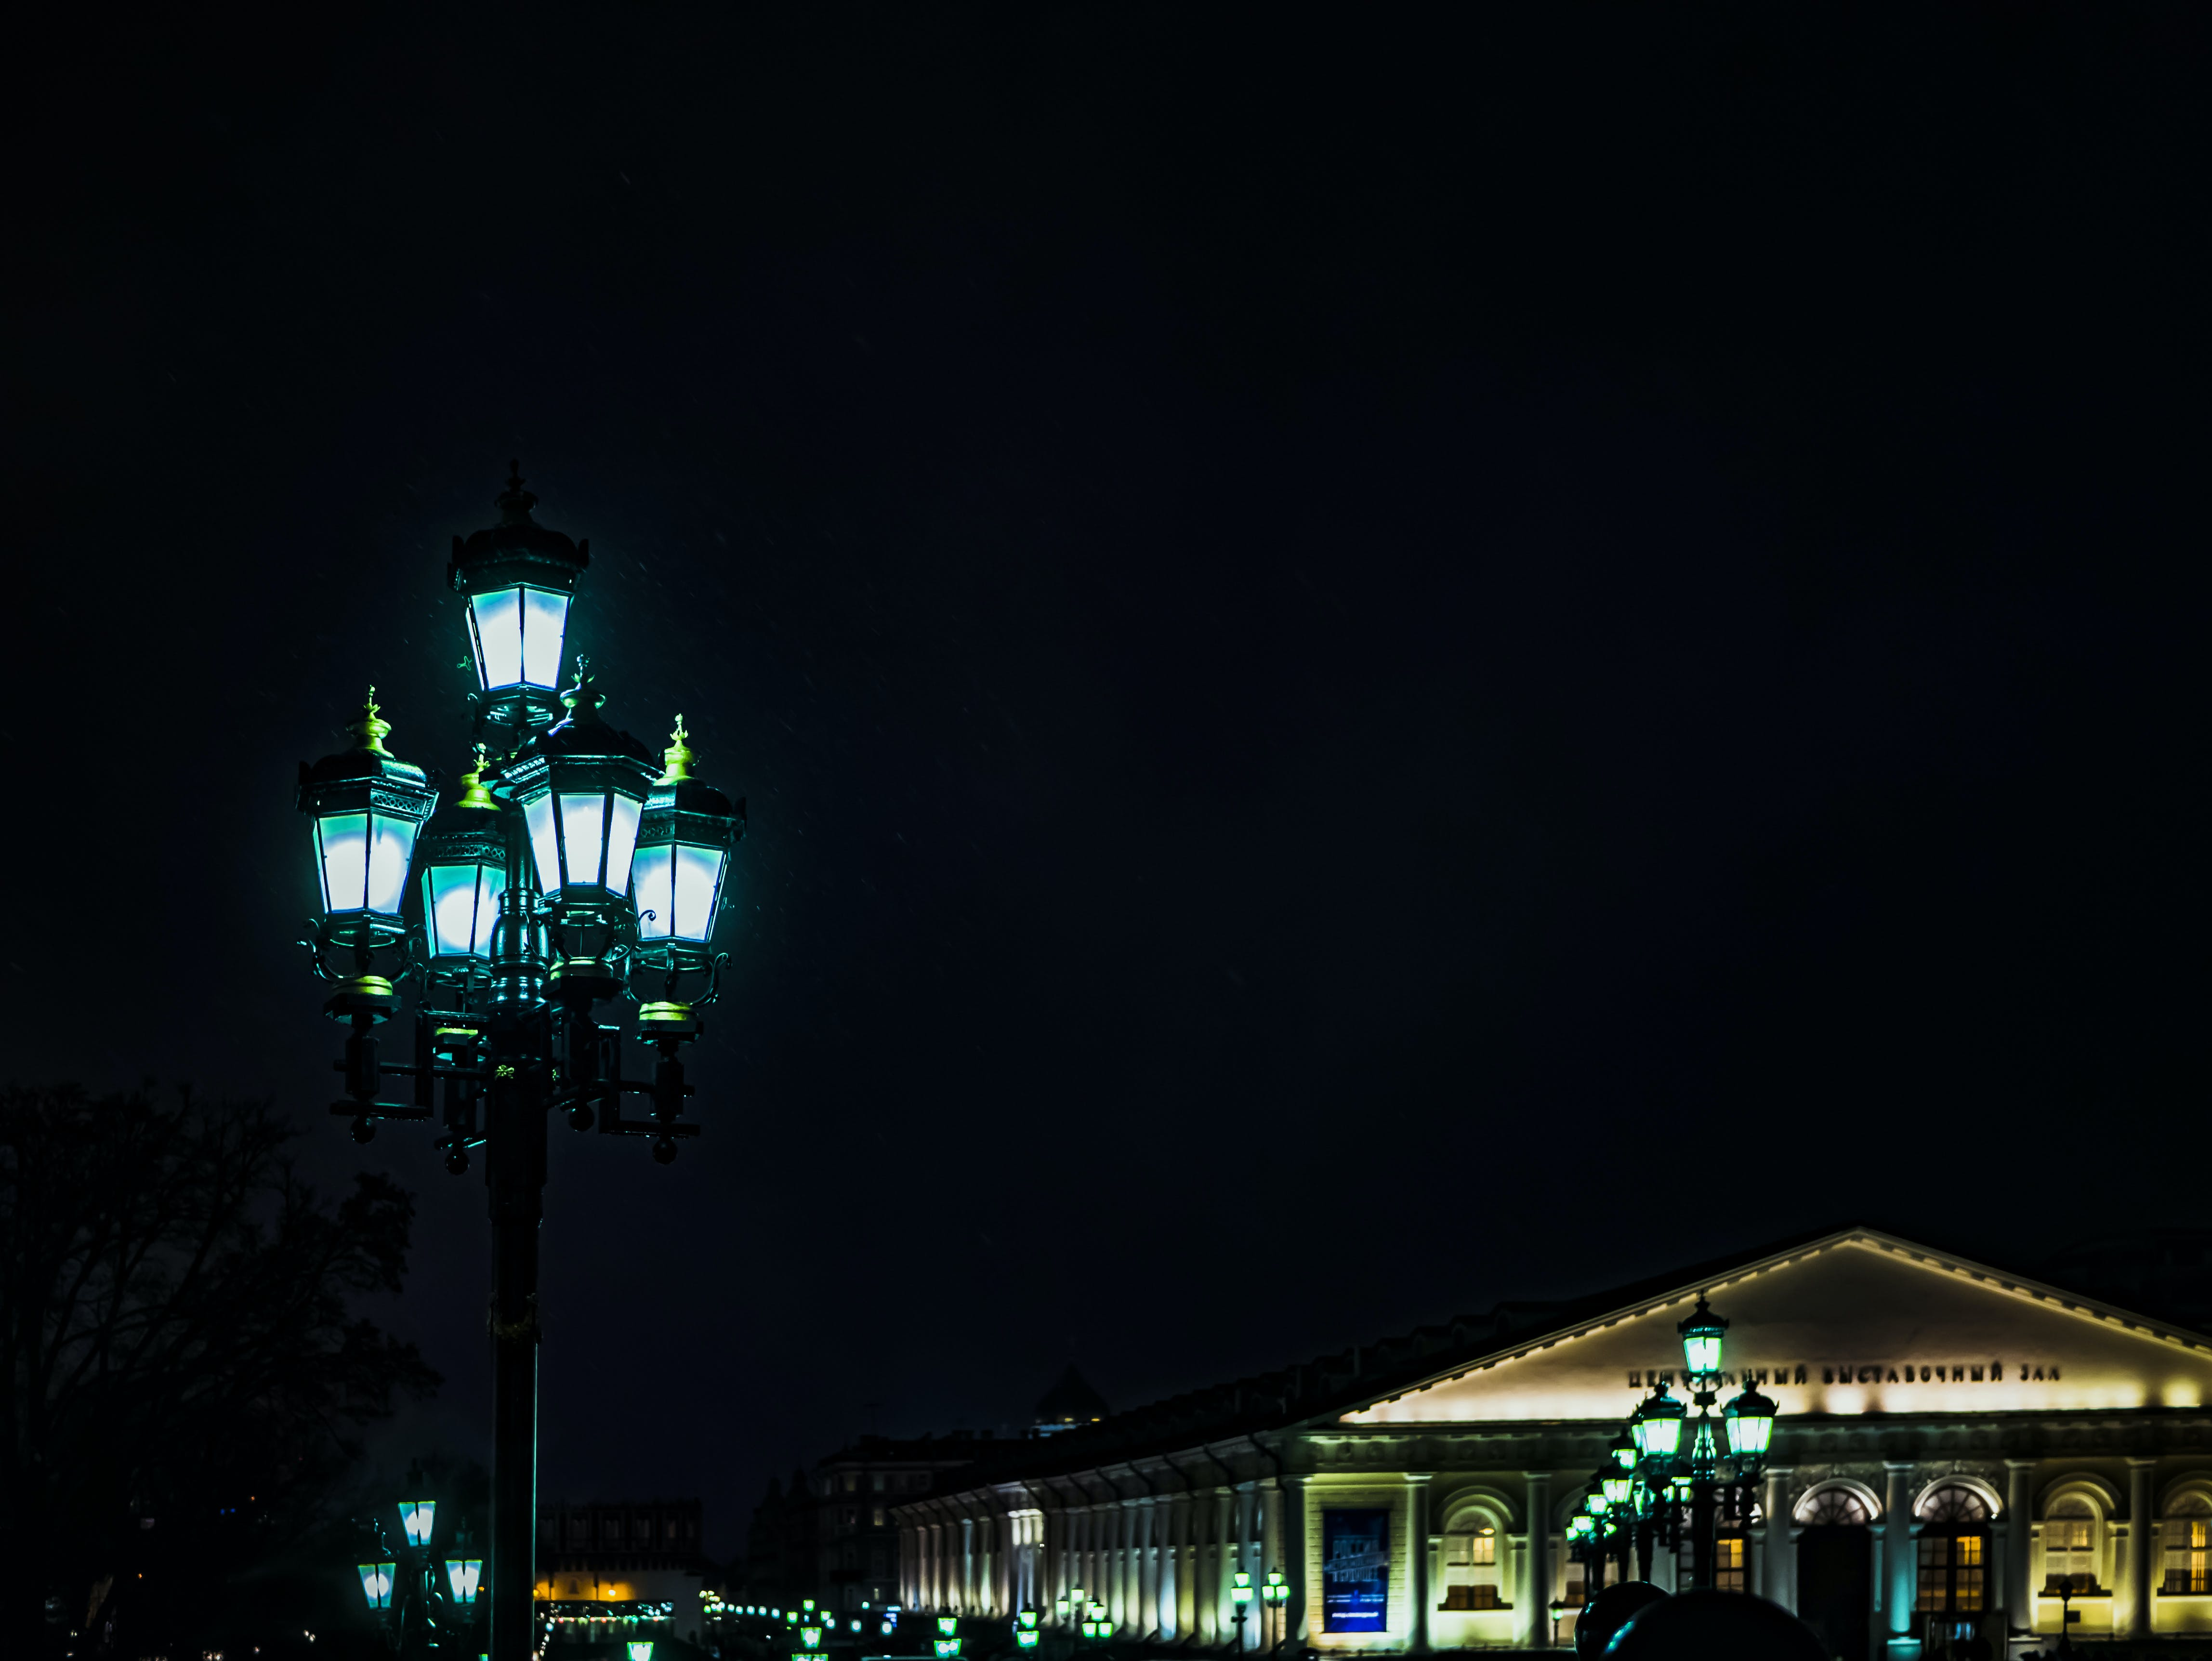 Photo of Turn-on Post Lamp during Nighttime